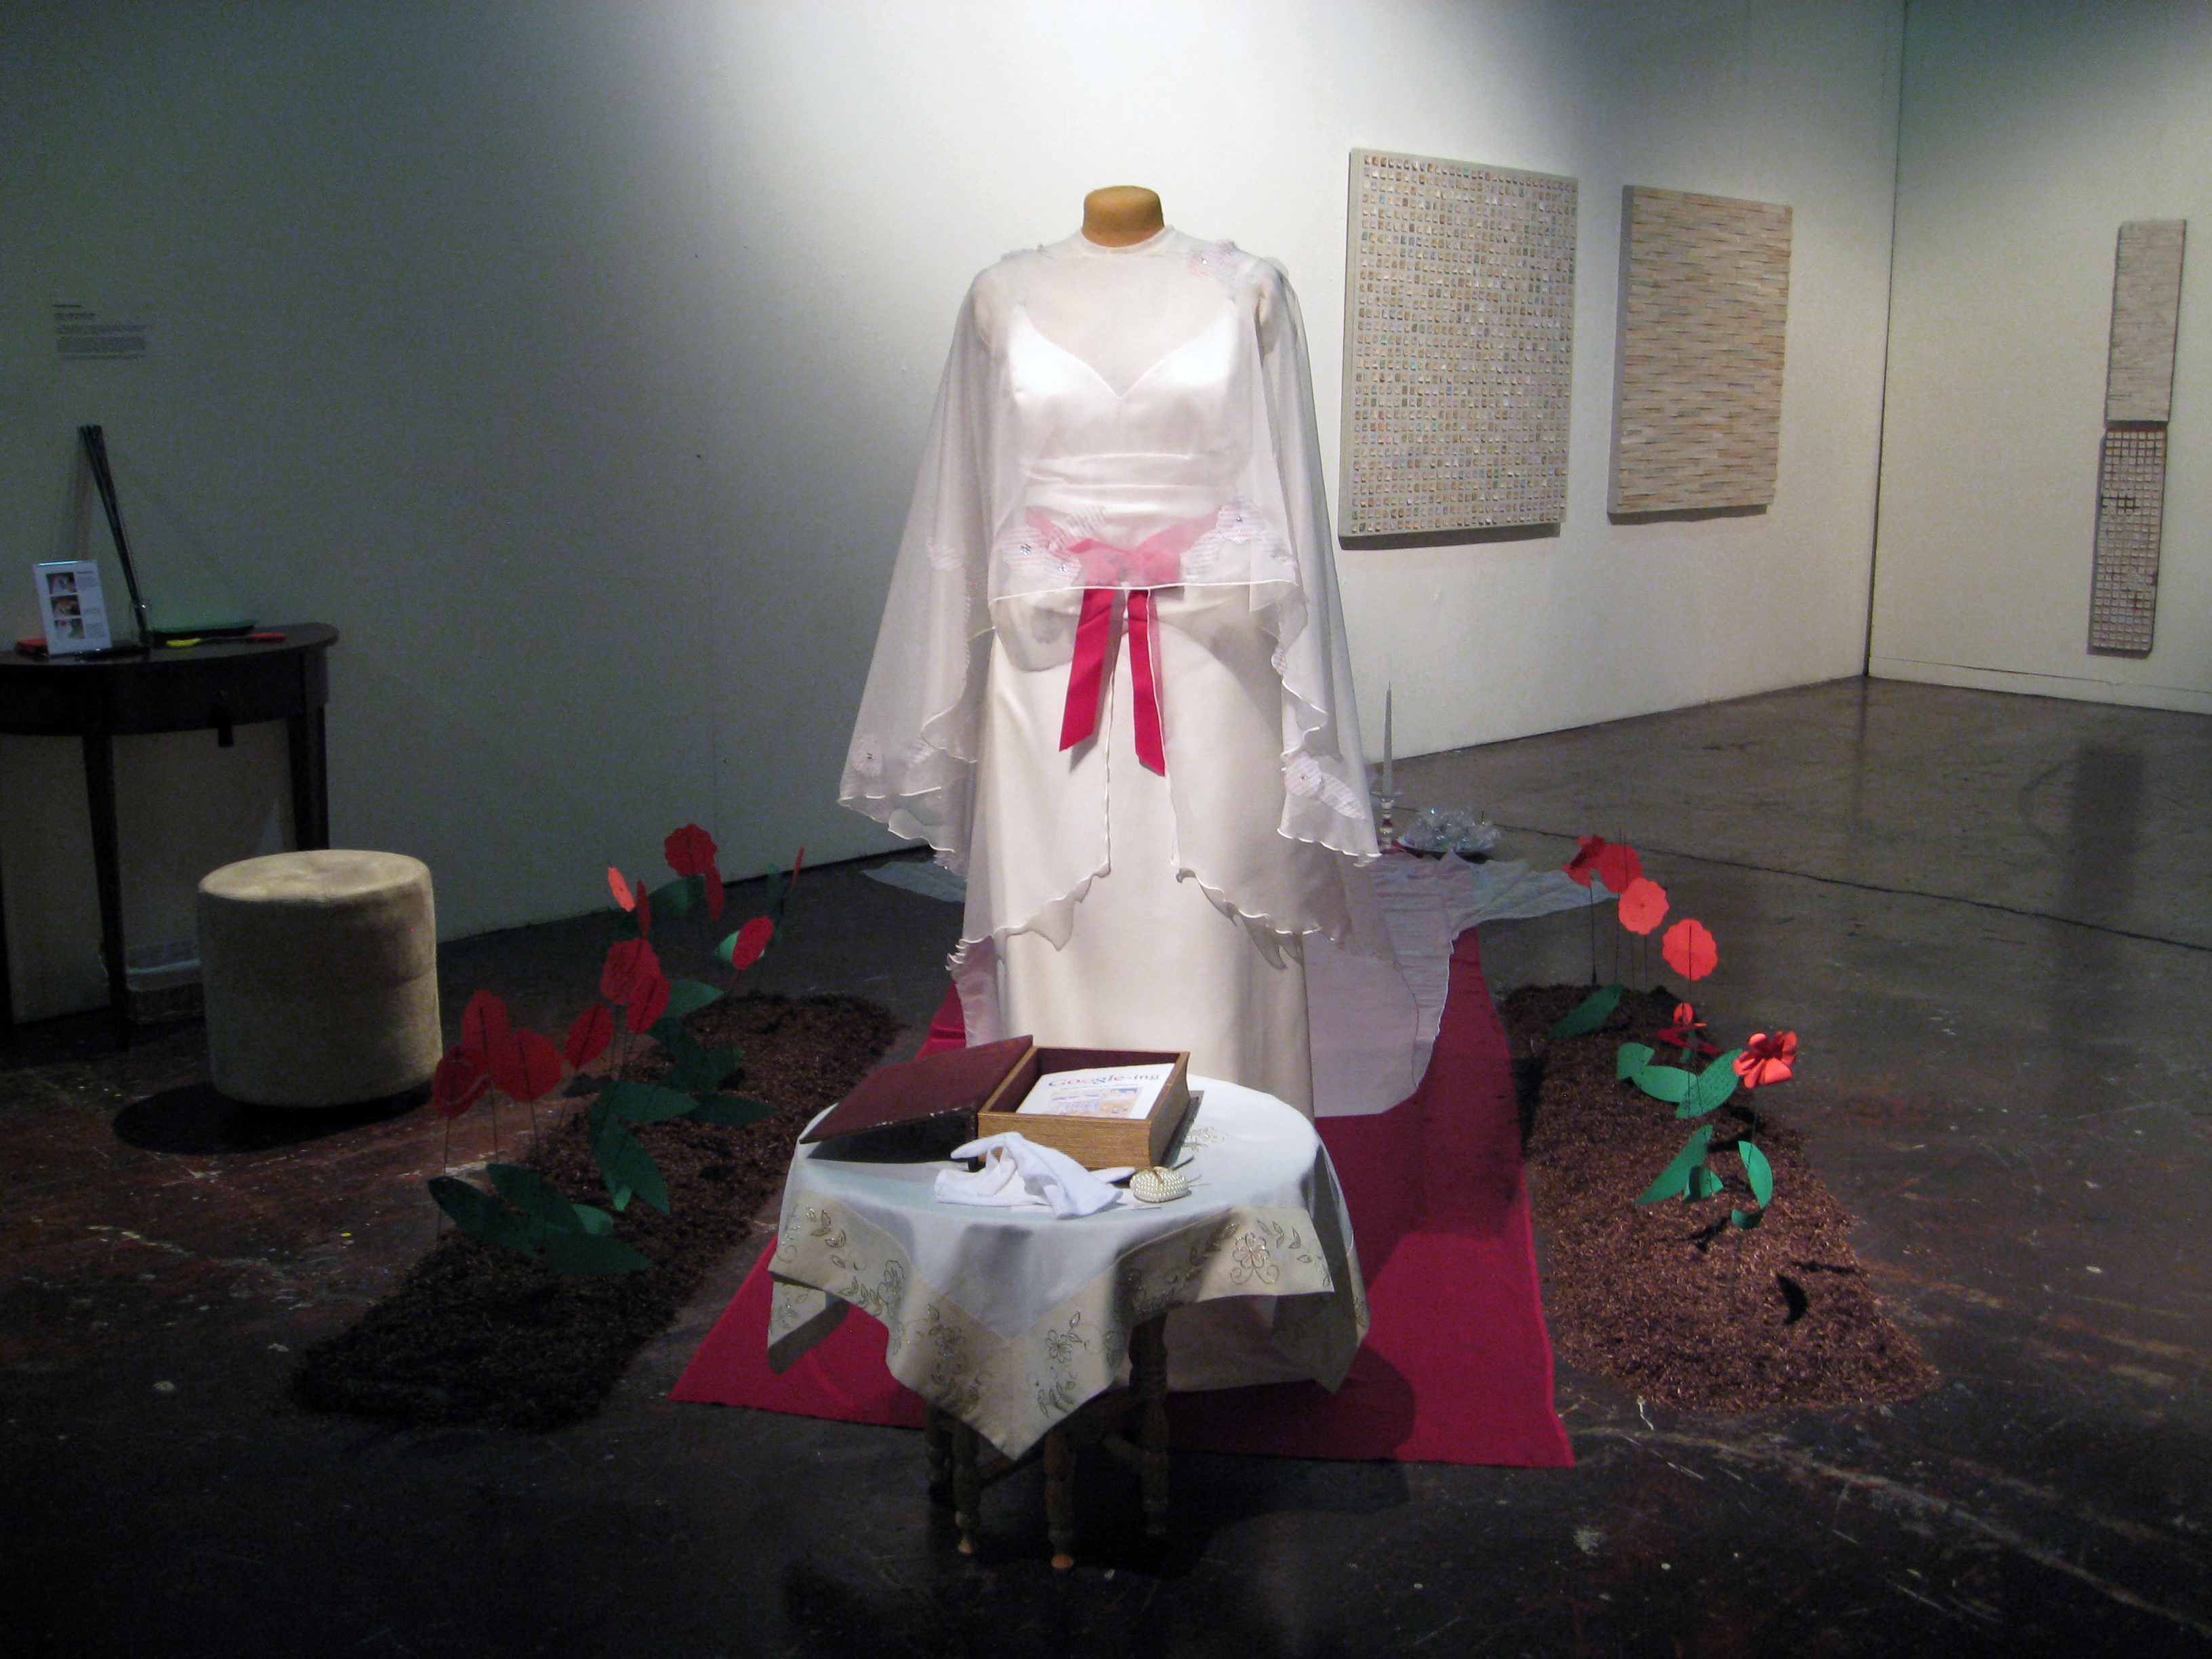 Munroe-Dissolution Dress installation